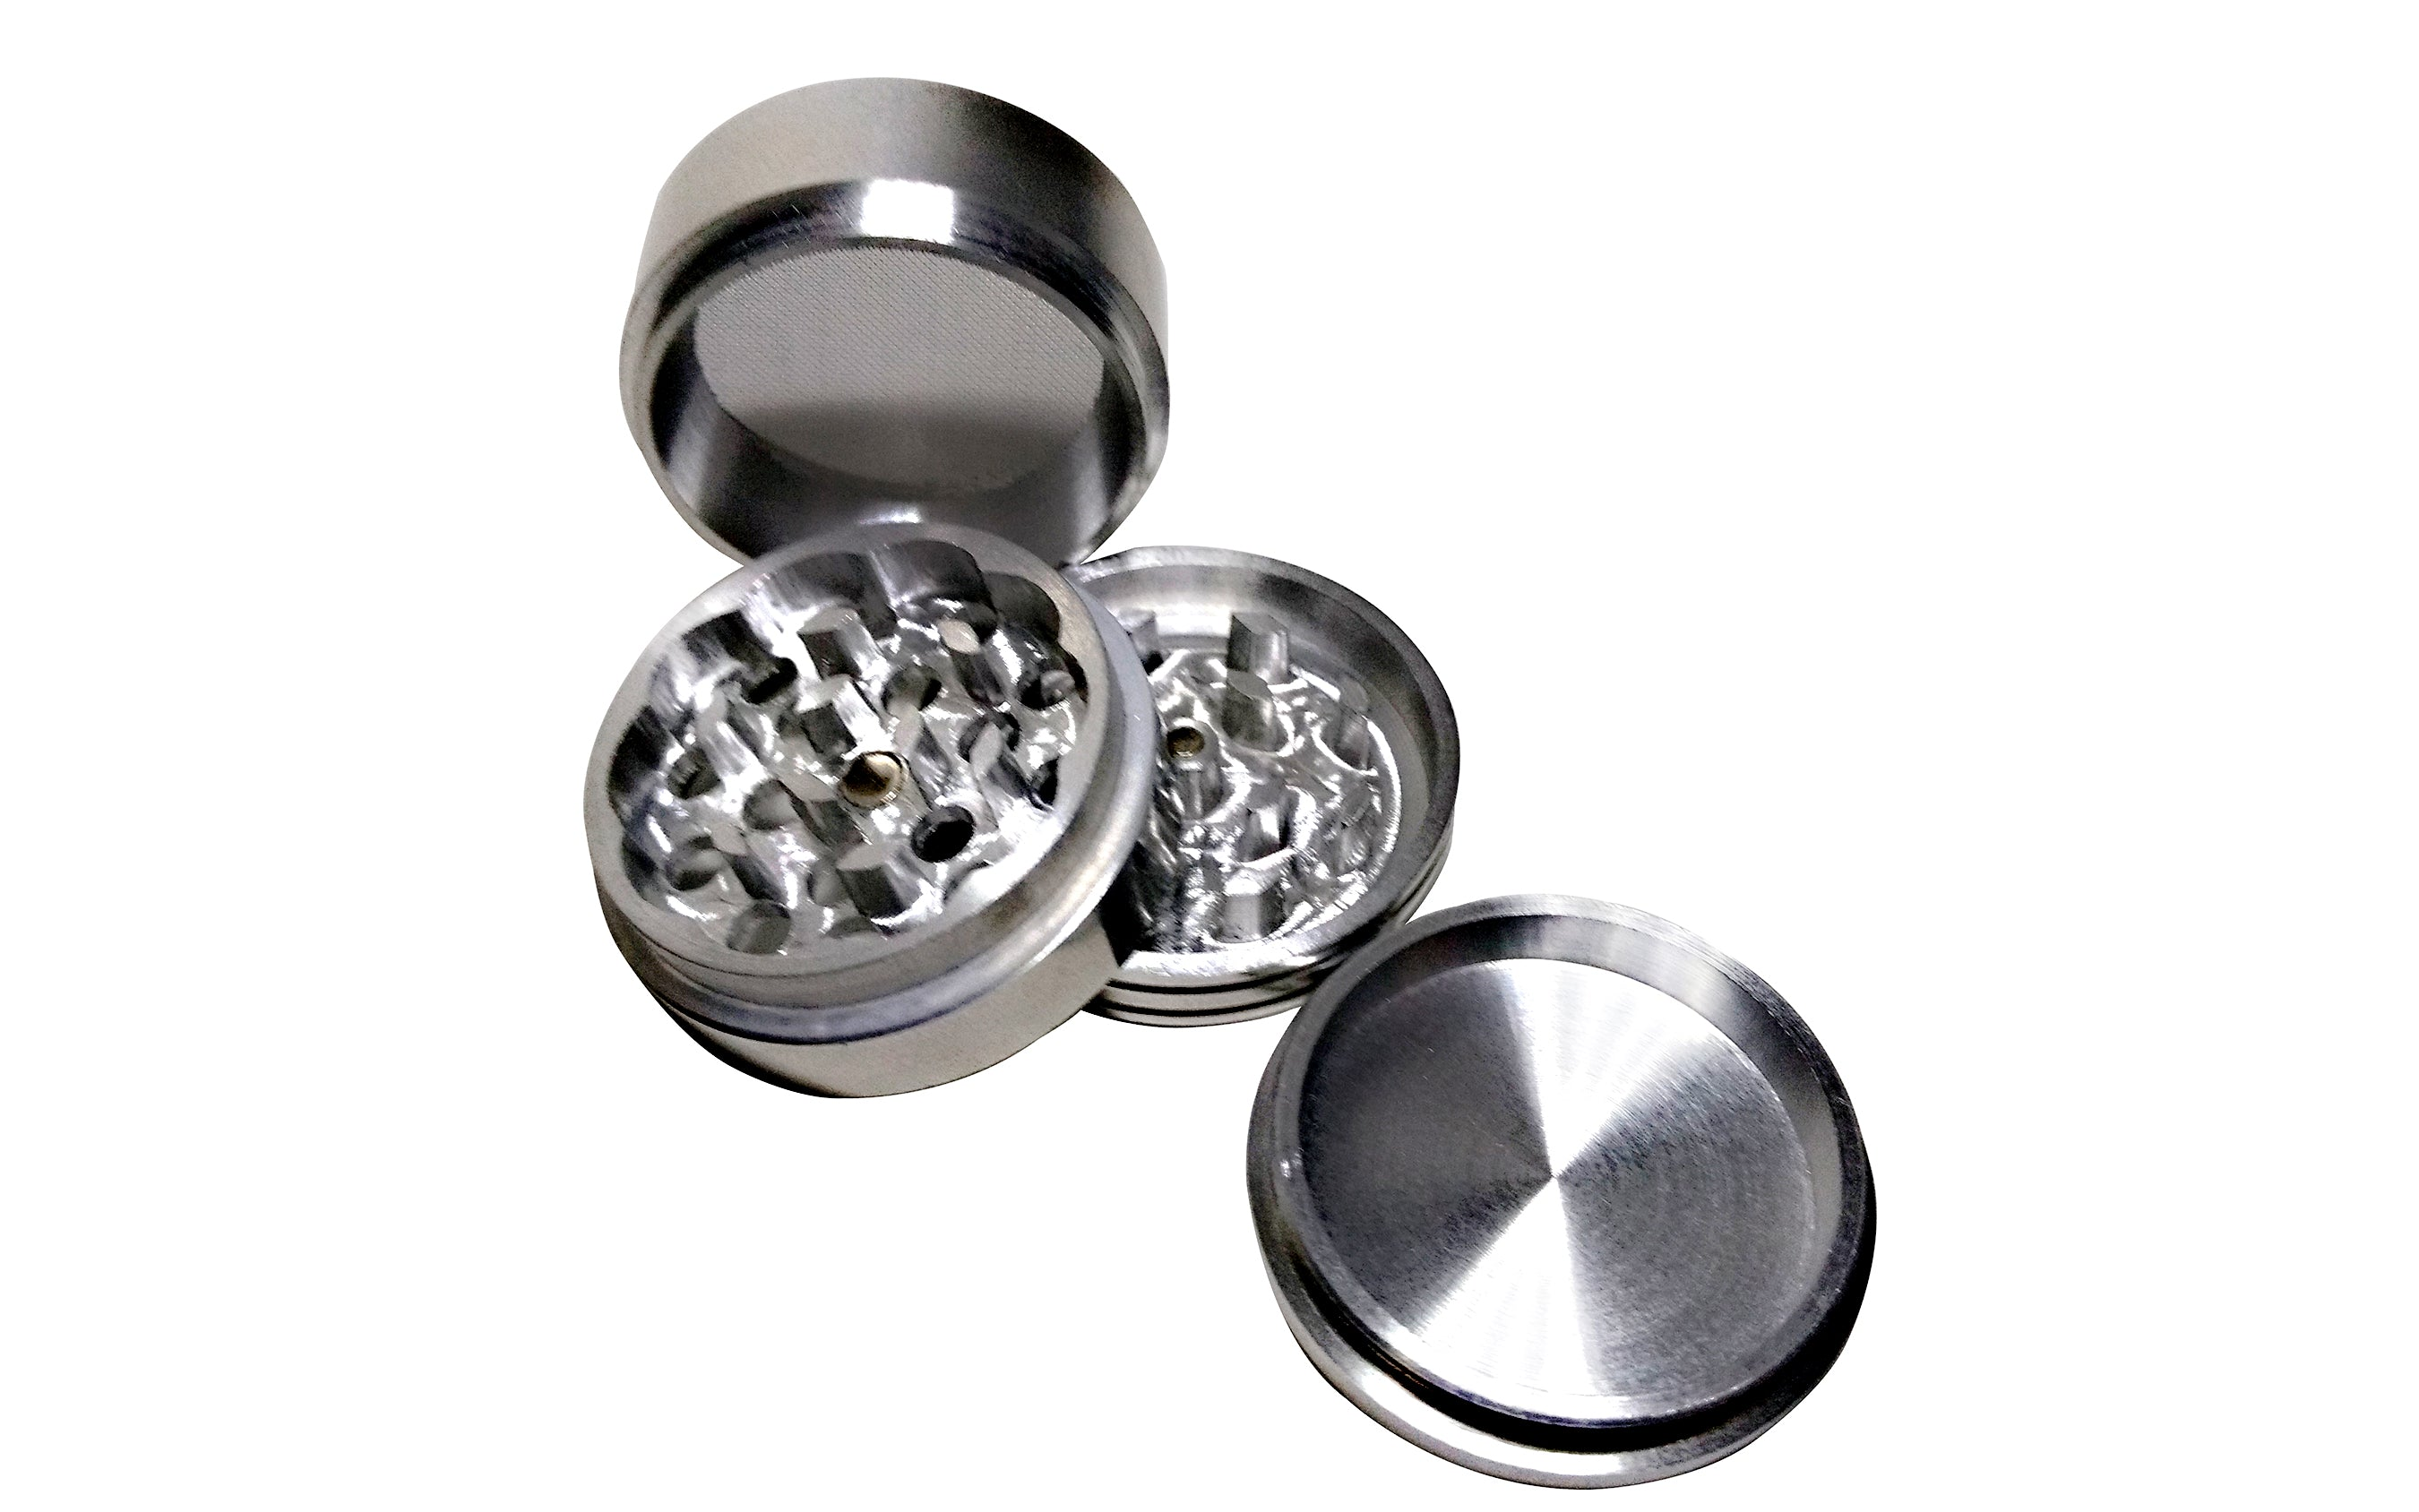 Included grinders in smoking kits